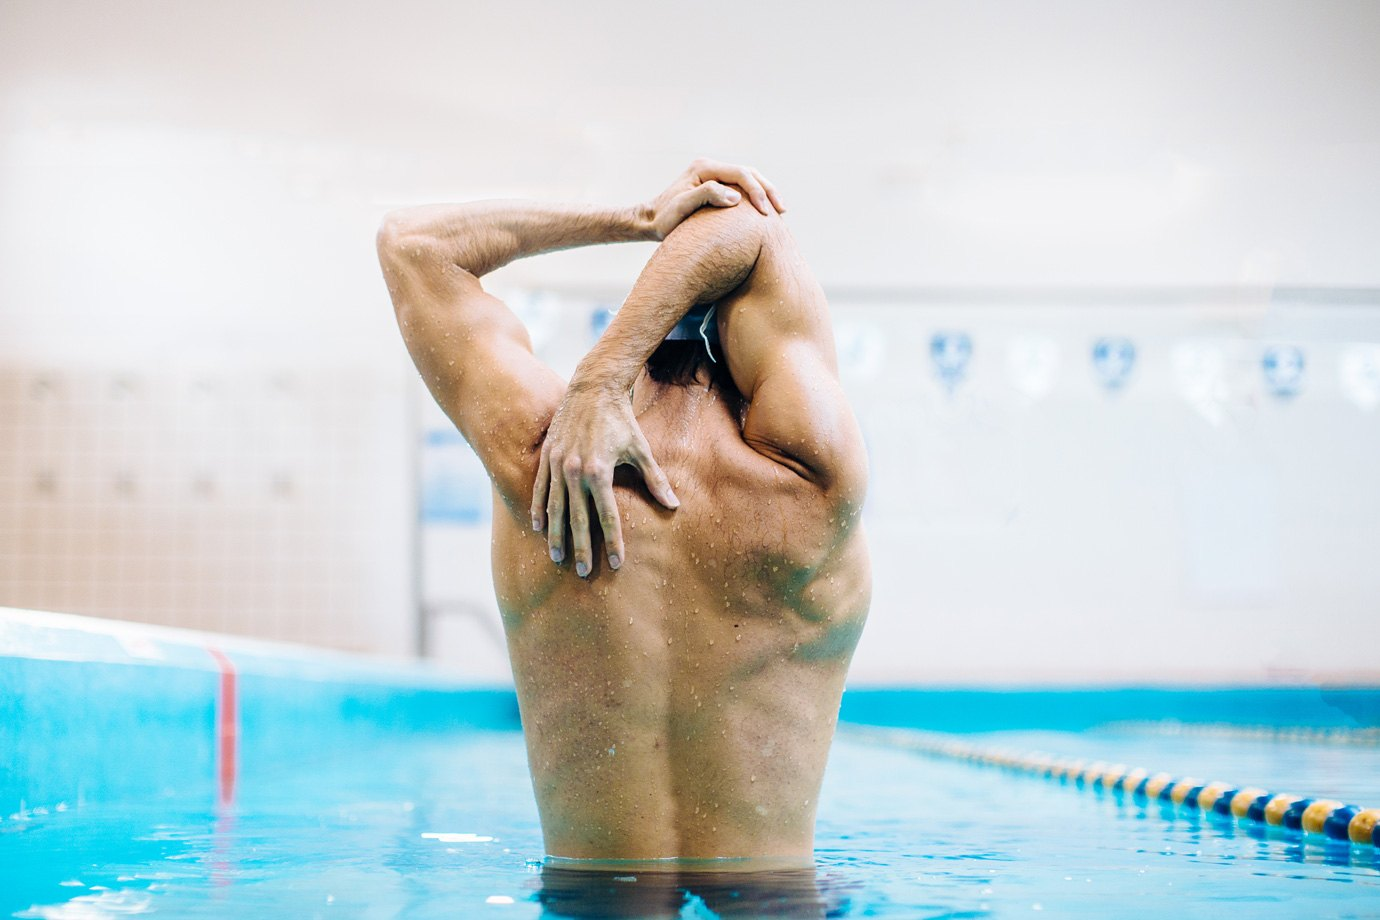 Swimming Workouts The 5 Best Swimming Drills To Get Jacked